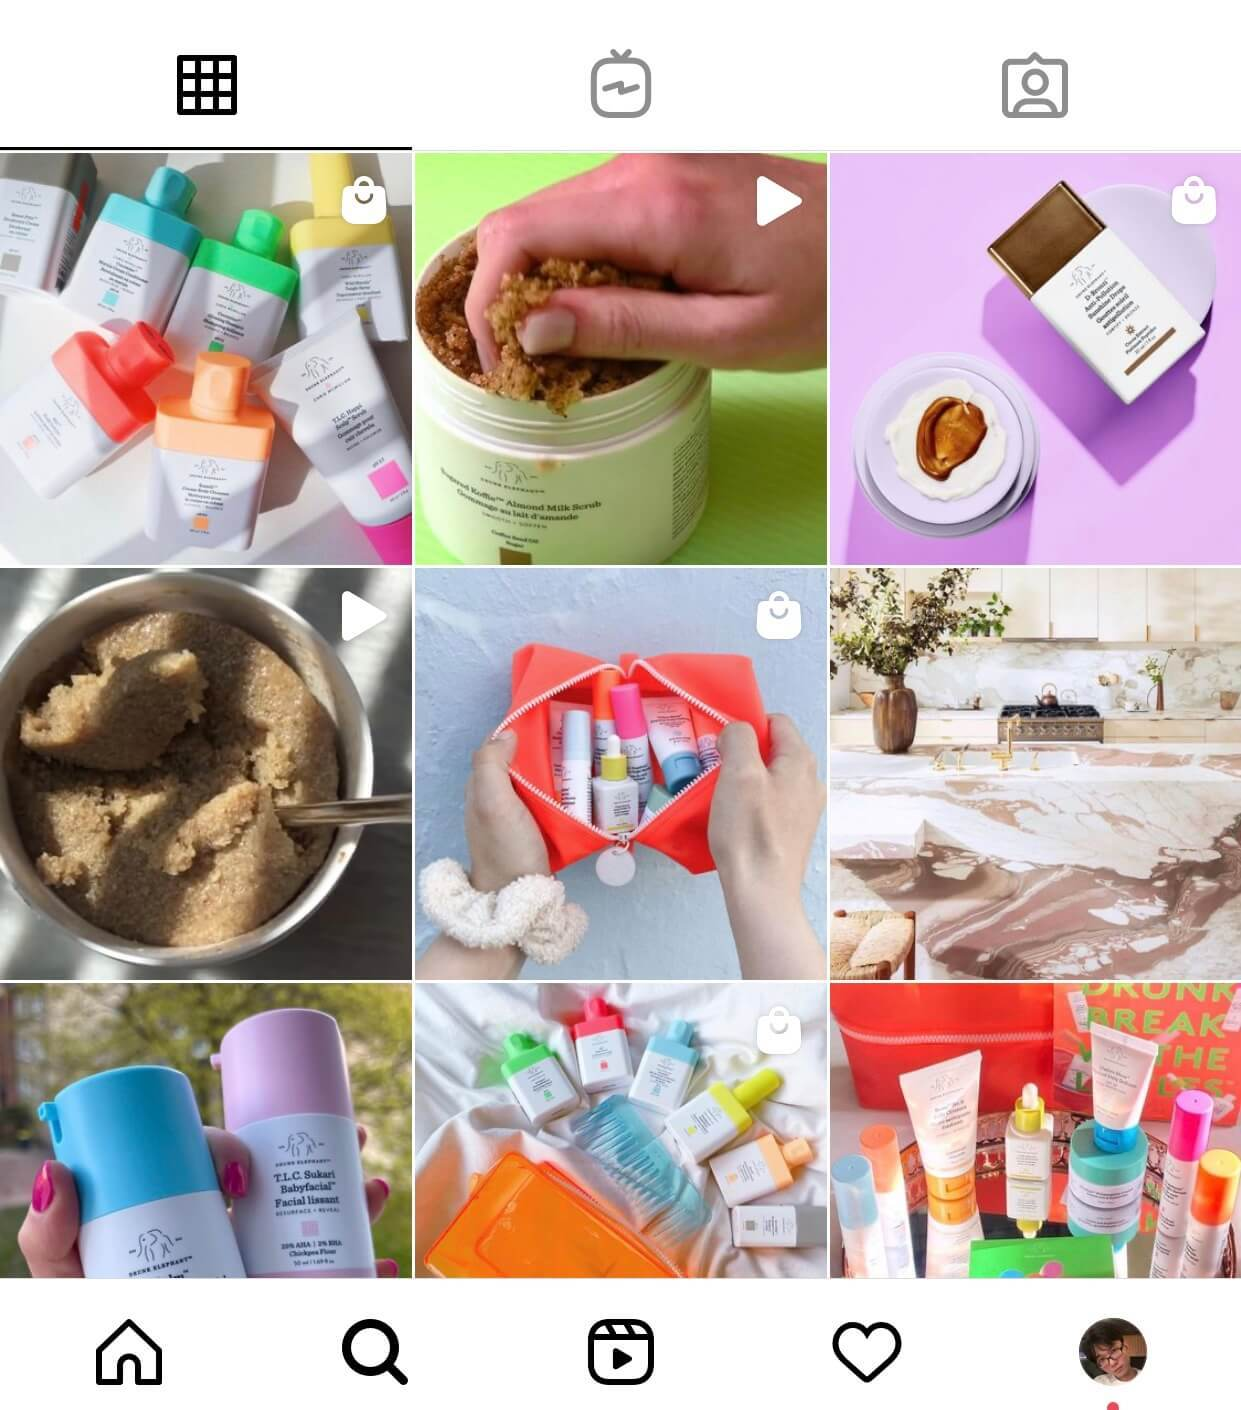 Ensure your Instagram feed is unique and outstanding